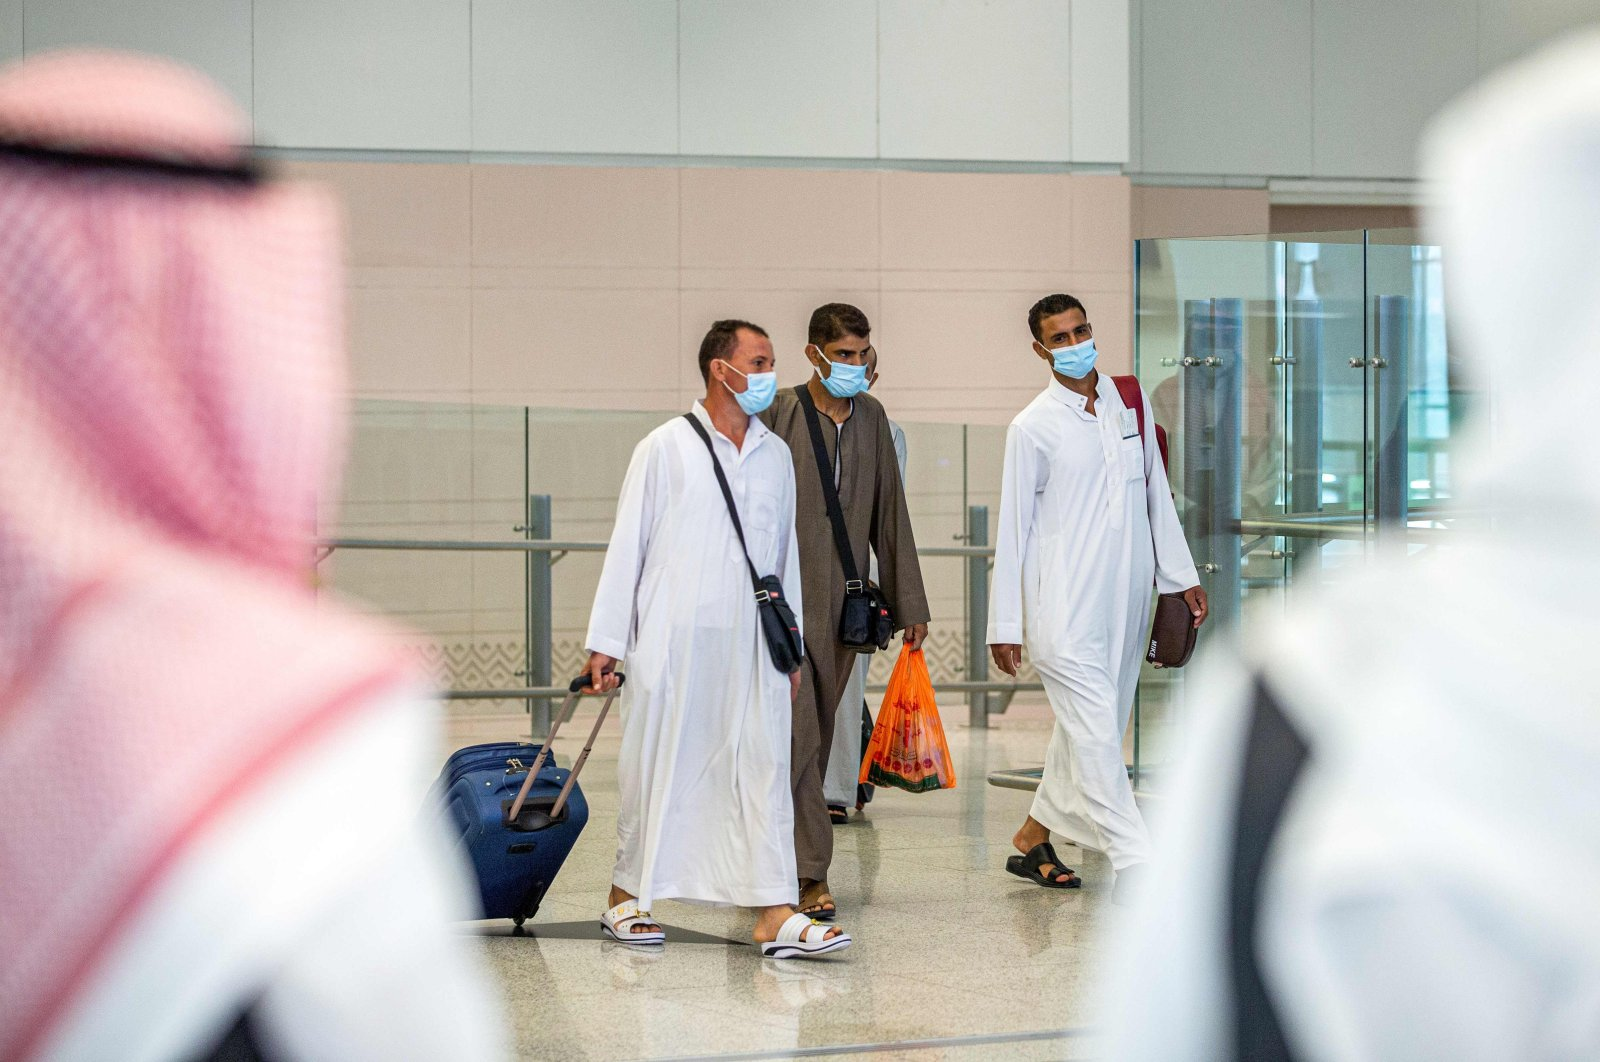 A handout picture provided by the Saudi Ministry of Hajj and Umra on July 25, 2020, shows travellers, mask-clad due to the COVID-19 coronavirus pandemic, walking with luggage as part of the first group of arrivals for the annual Hajj pilgrimage, at the Red Sea coastal city of Jeddah's King Abdulaziz International Airport.(AFP Photo)